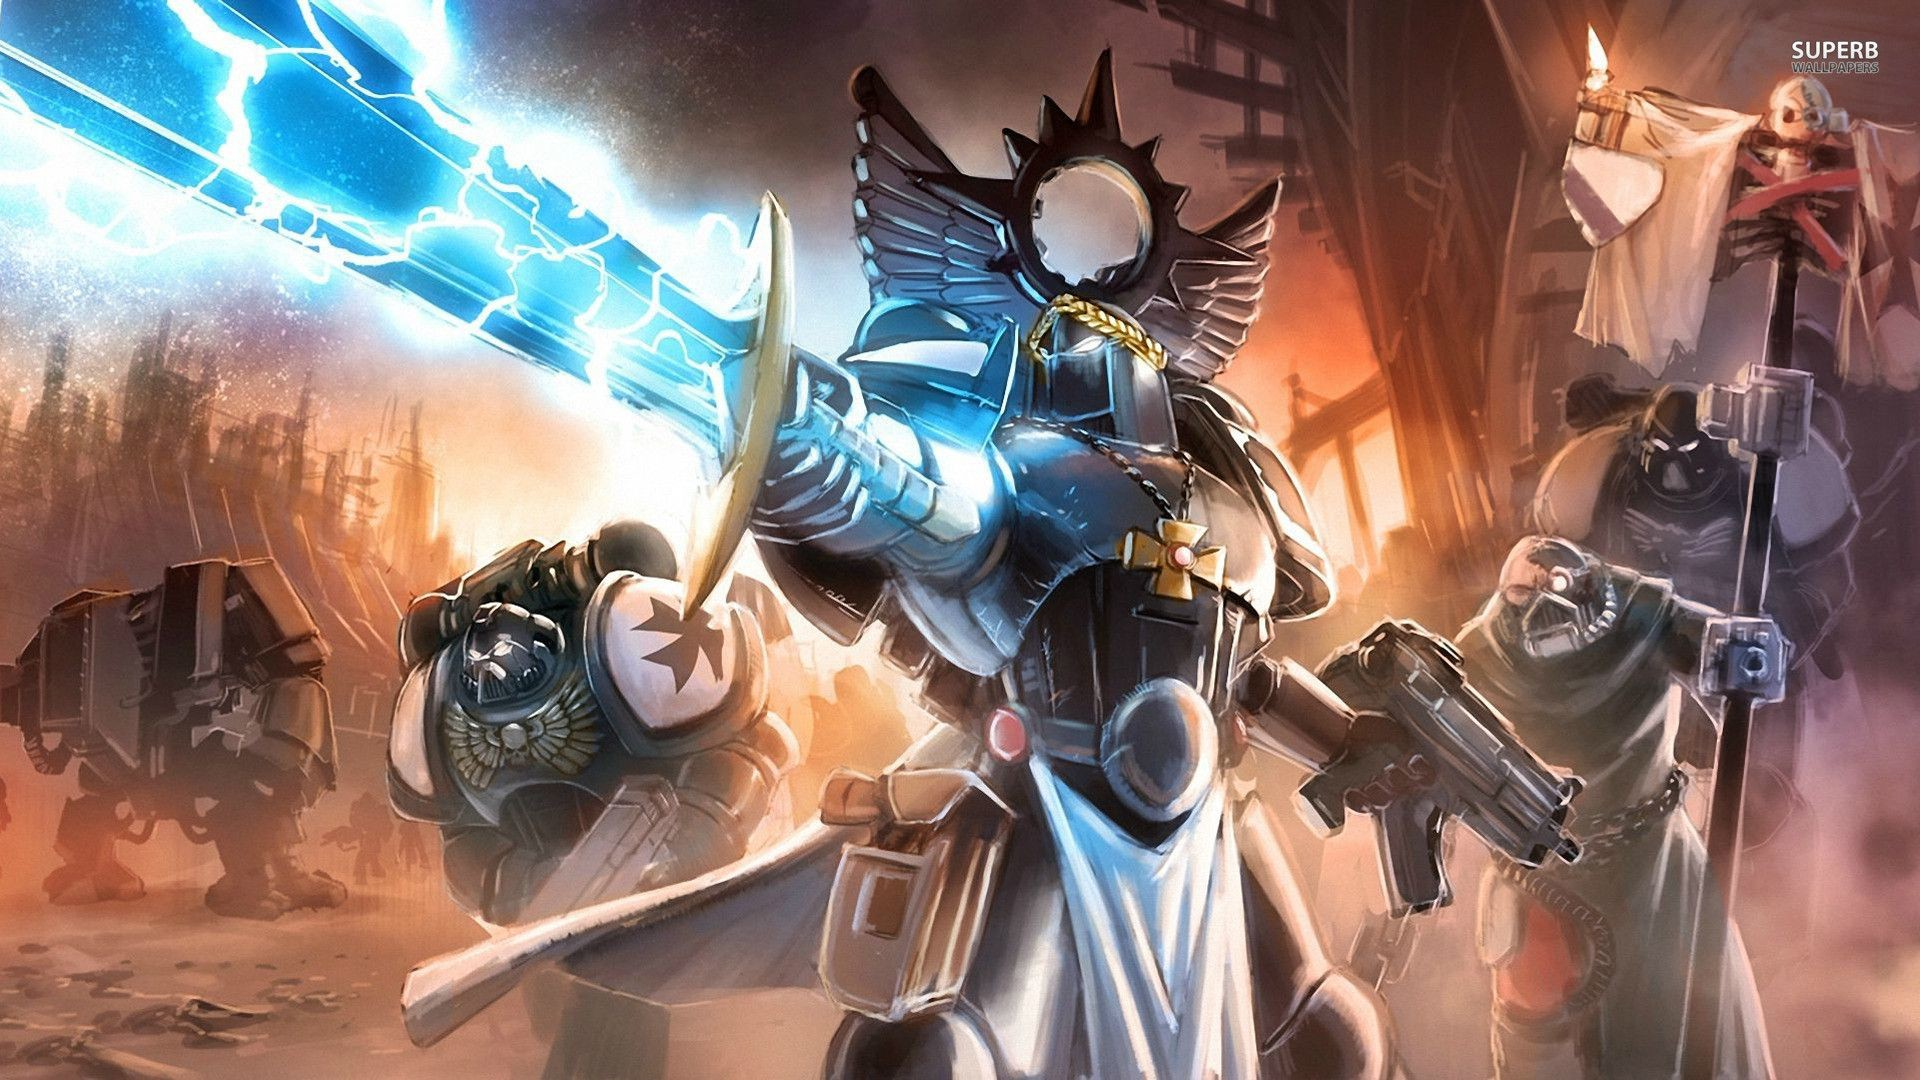 Warhammer 40K HD Wallpapers and Backgrounds | Free Wallpapers | Pinterest |  Wallpaper